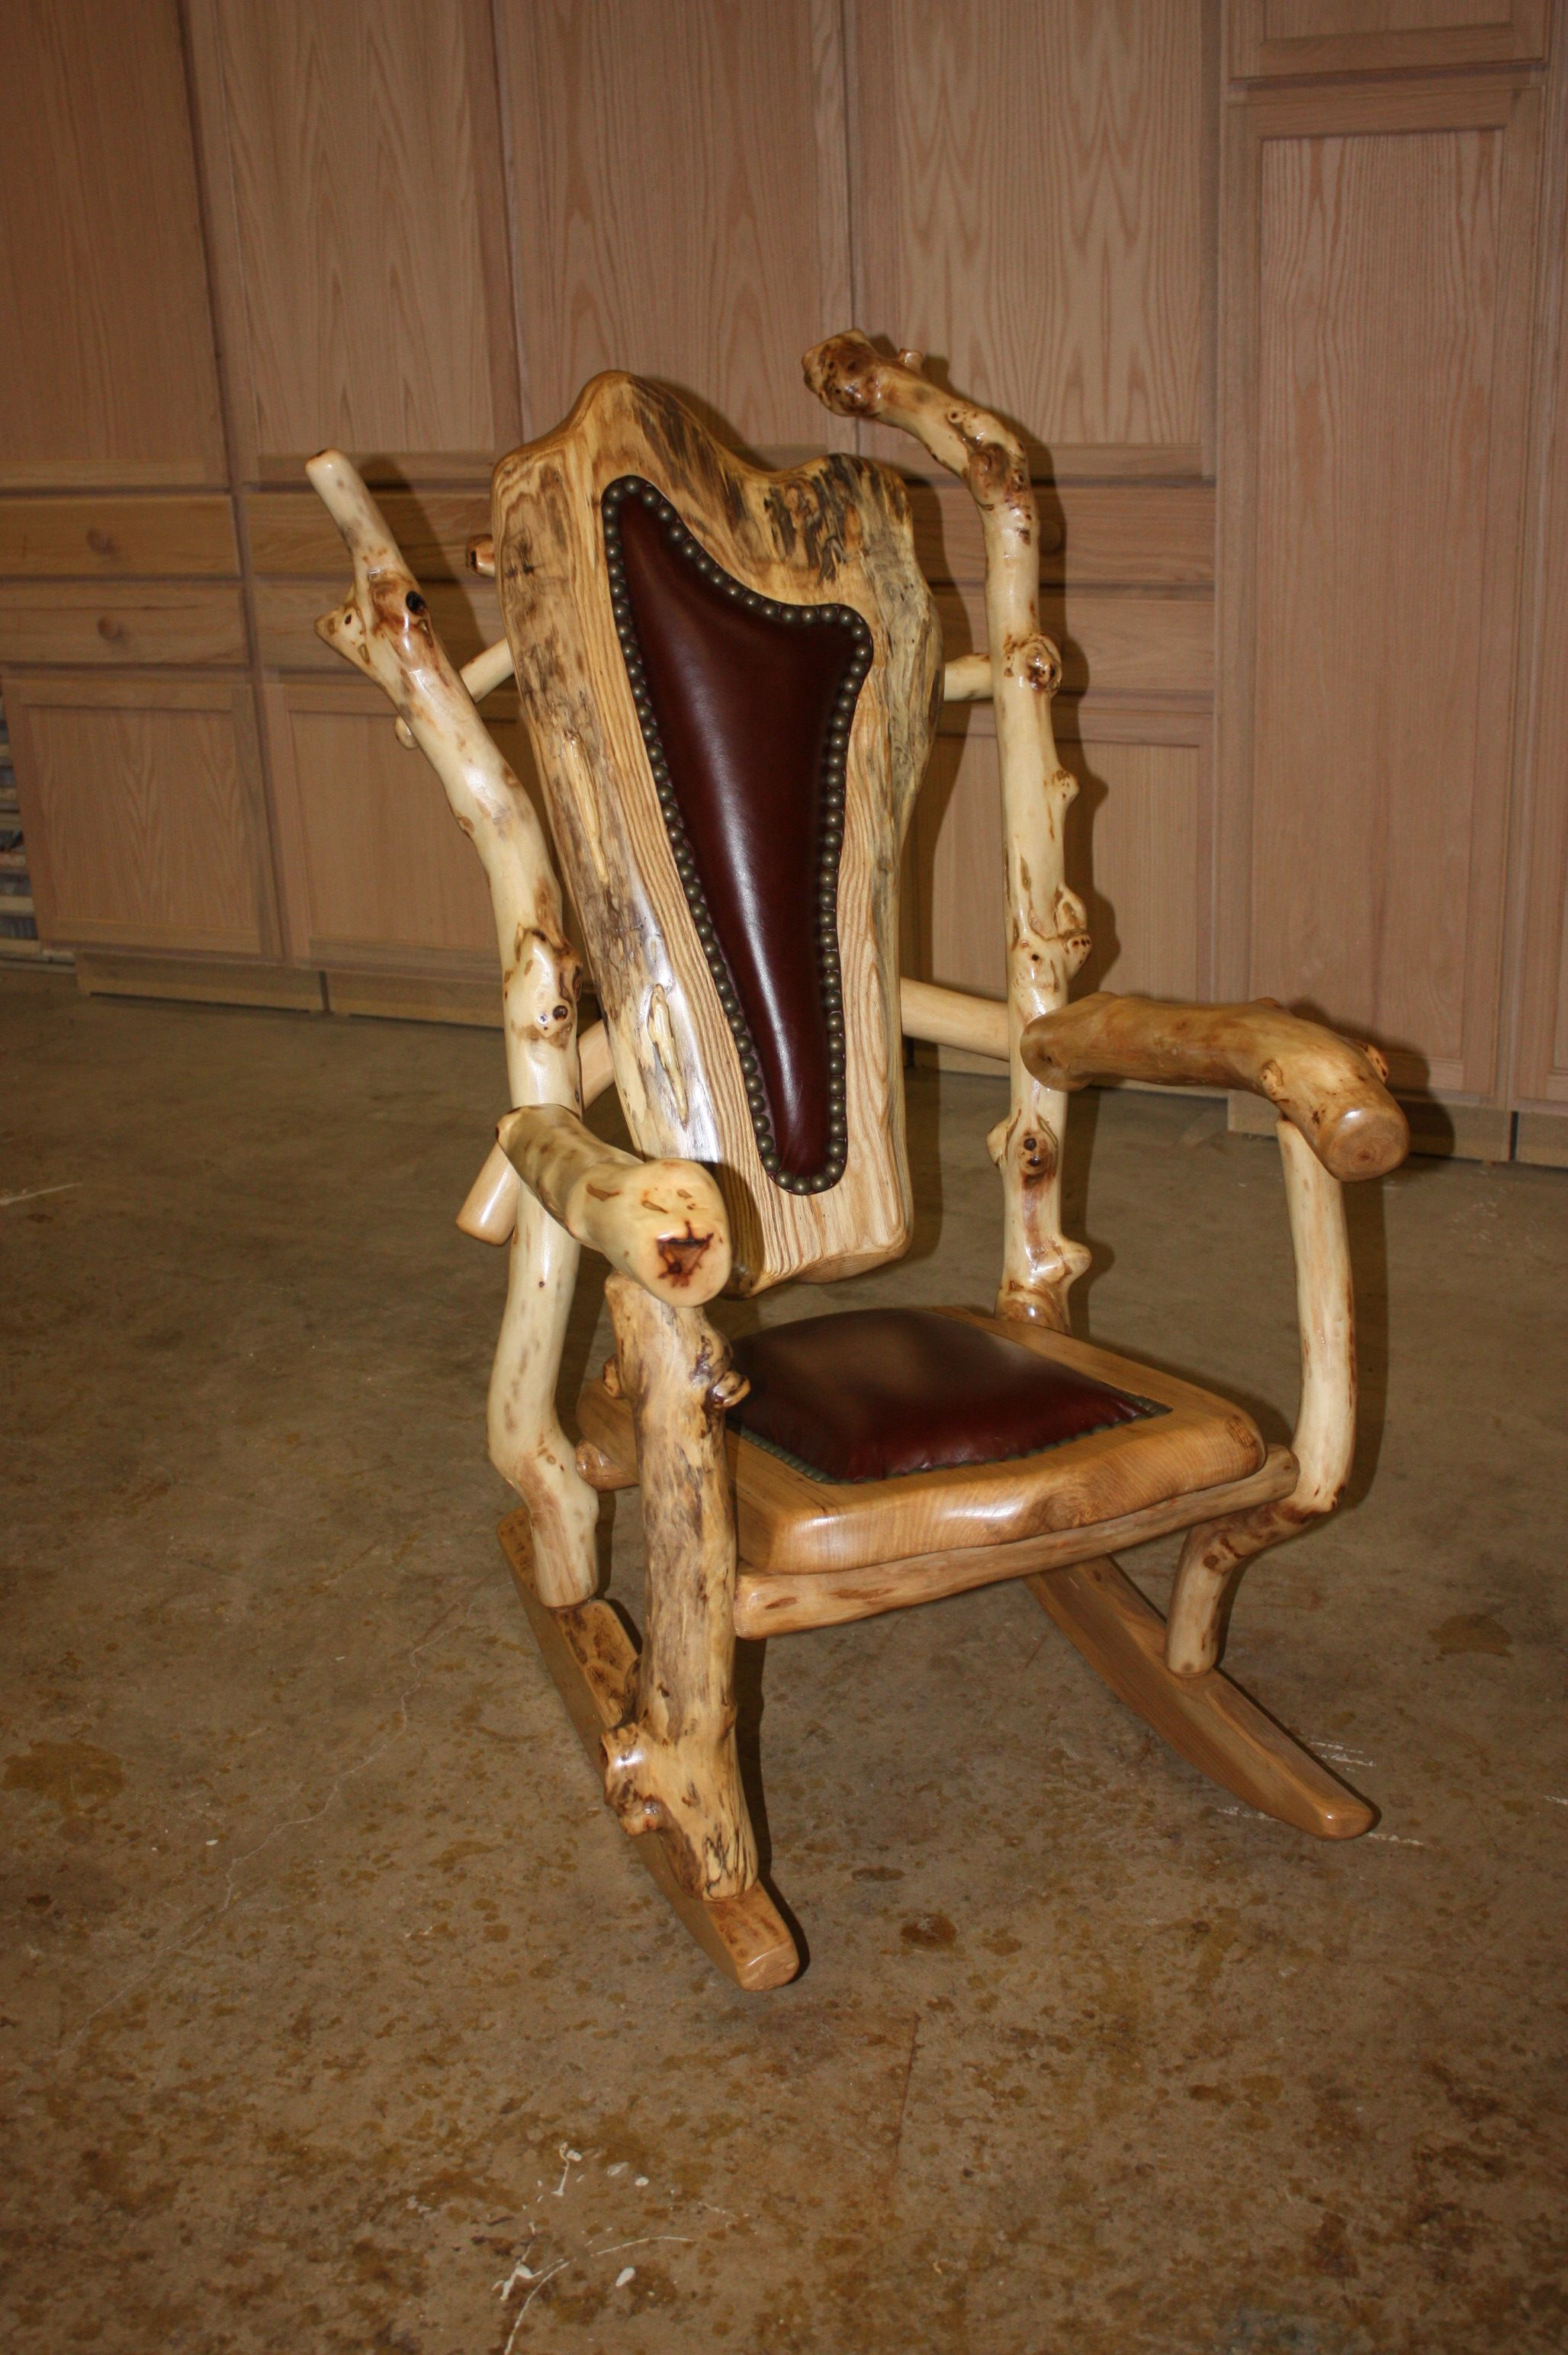 Unique Log Furniture One Awesome Chair I Good Surely See It On The Porch Rustic Log Furniture